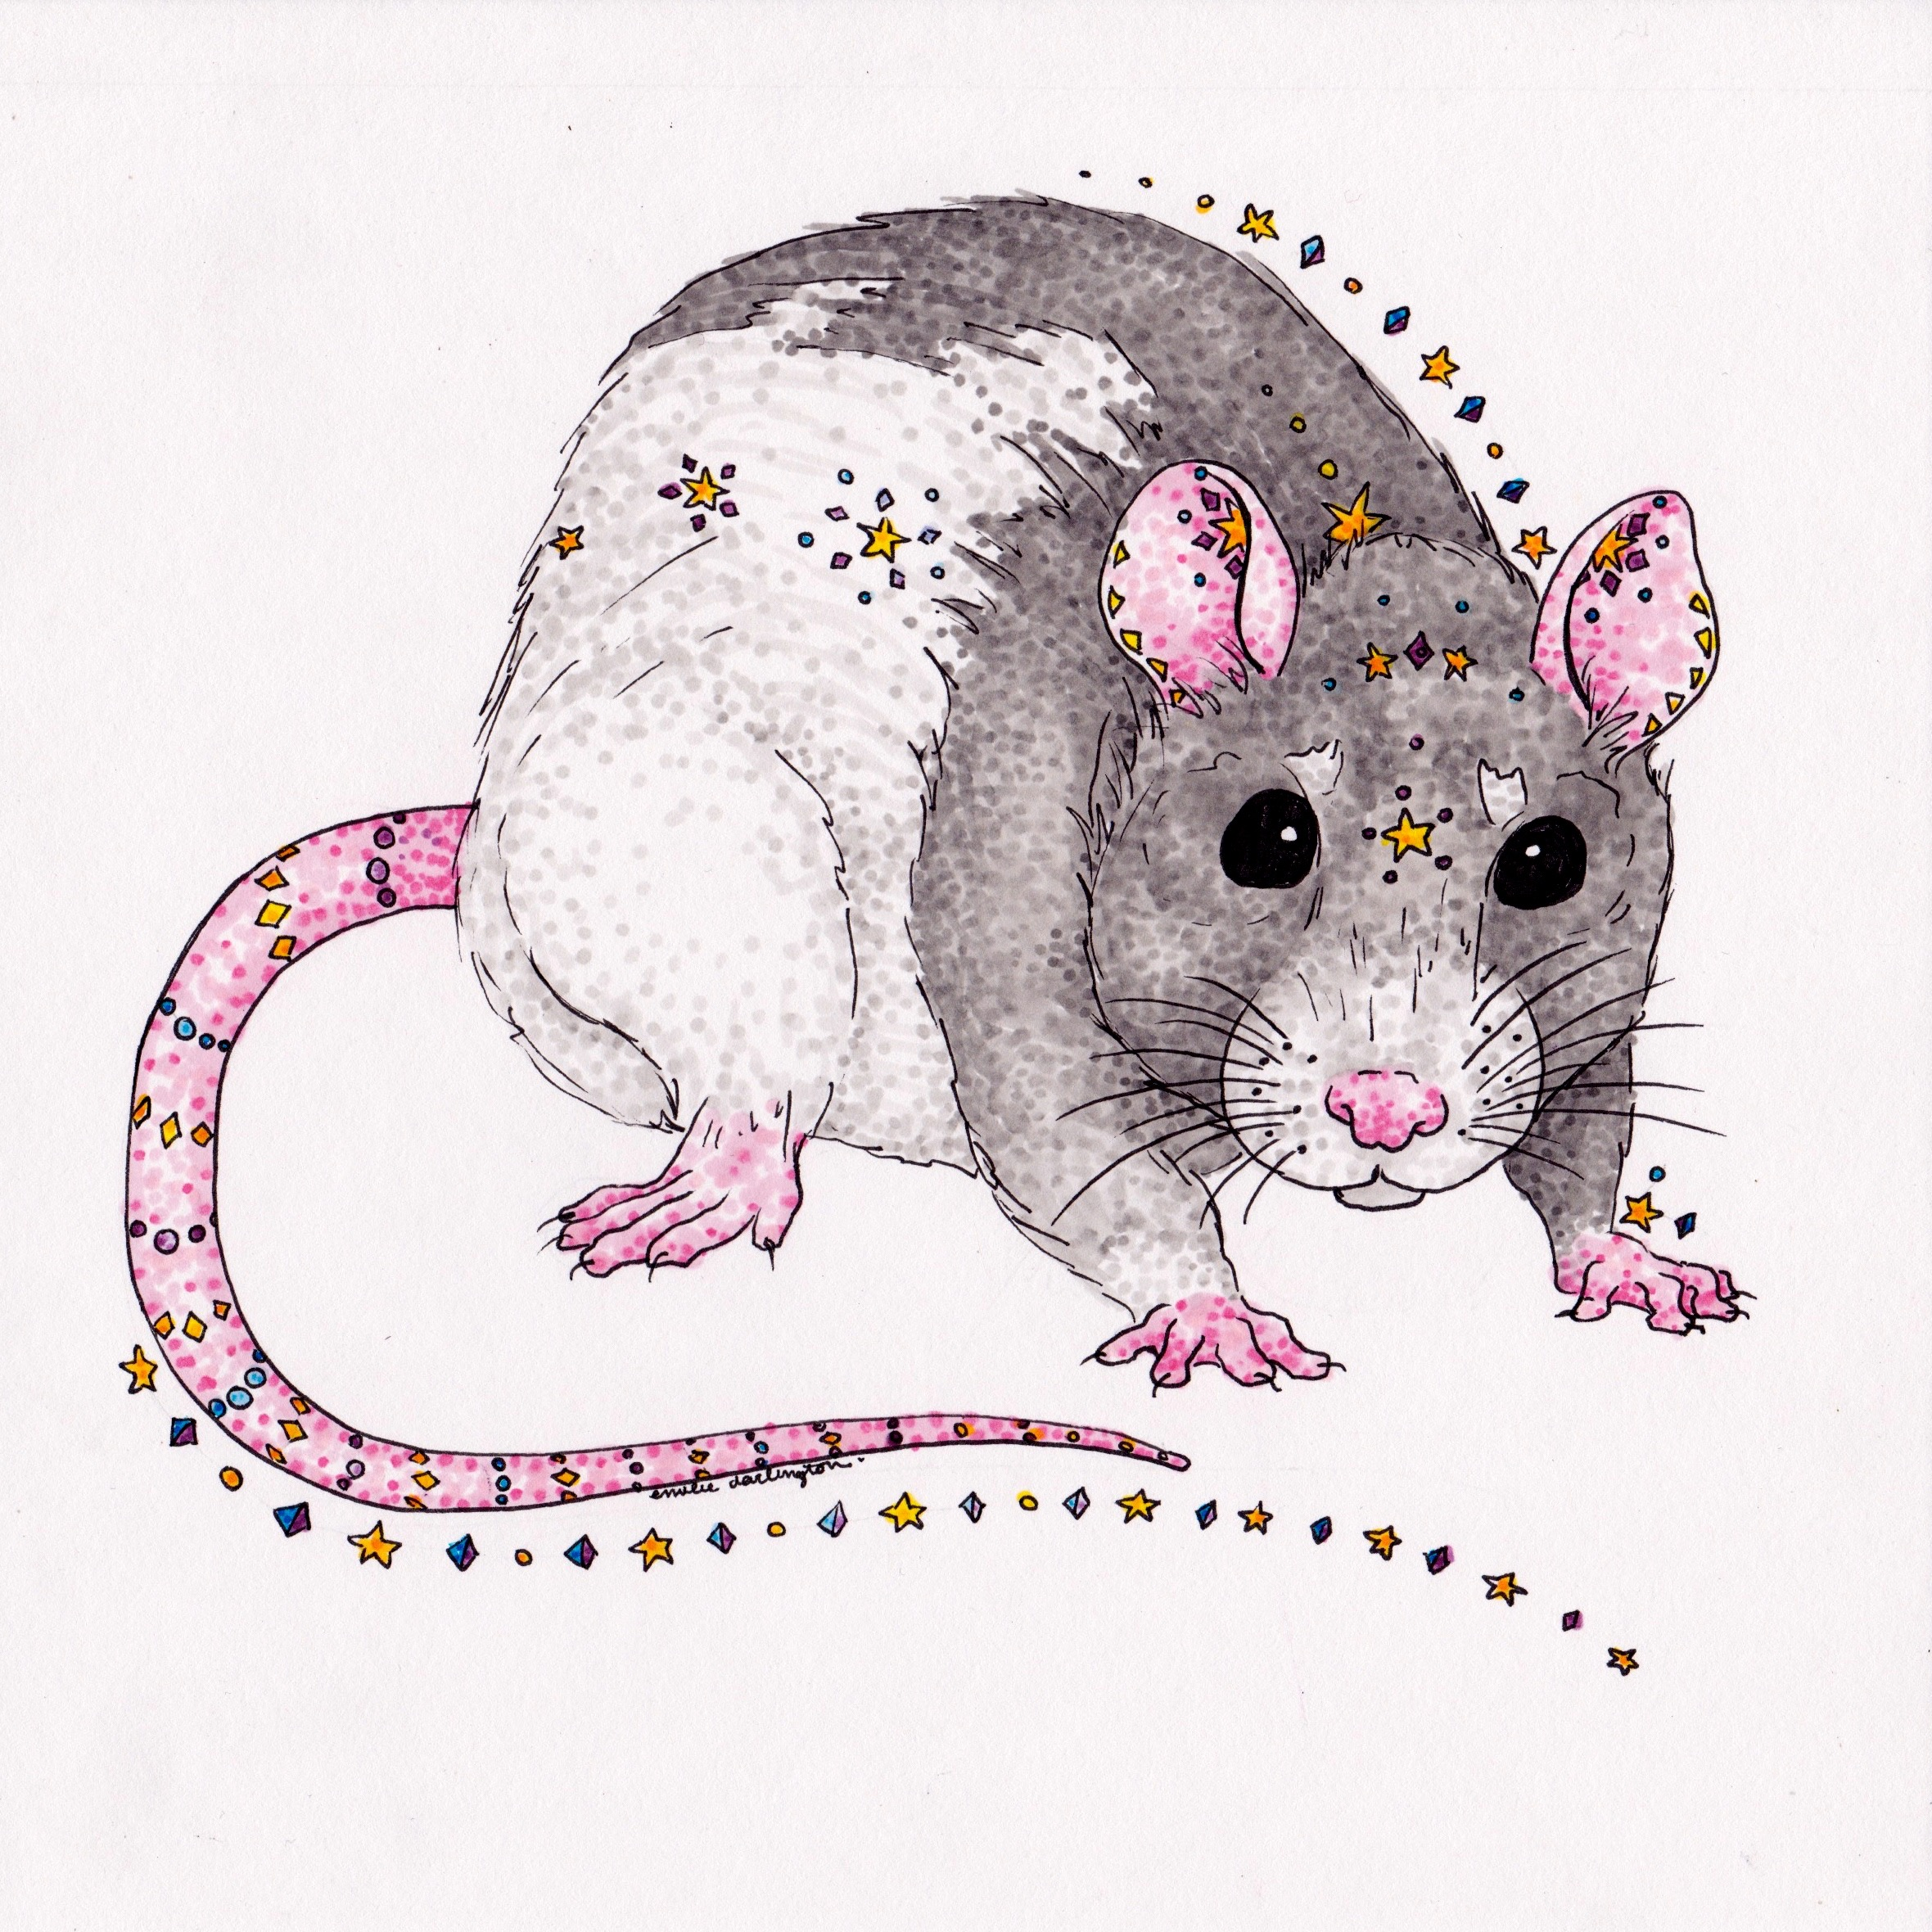 Dumbo Rat - This little critter was commissioned by a friend as a Christmas gift to her mother. The whole family has always owned pet dumbo rats, everyone cherishes their cute noses, giant ears, and clever minds.